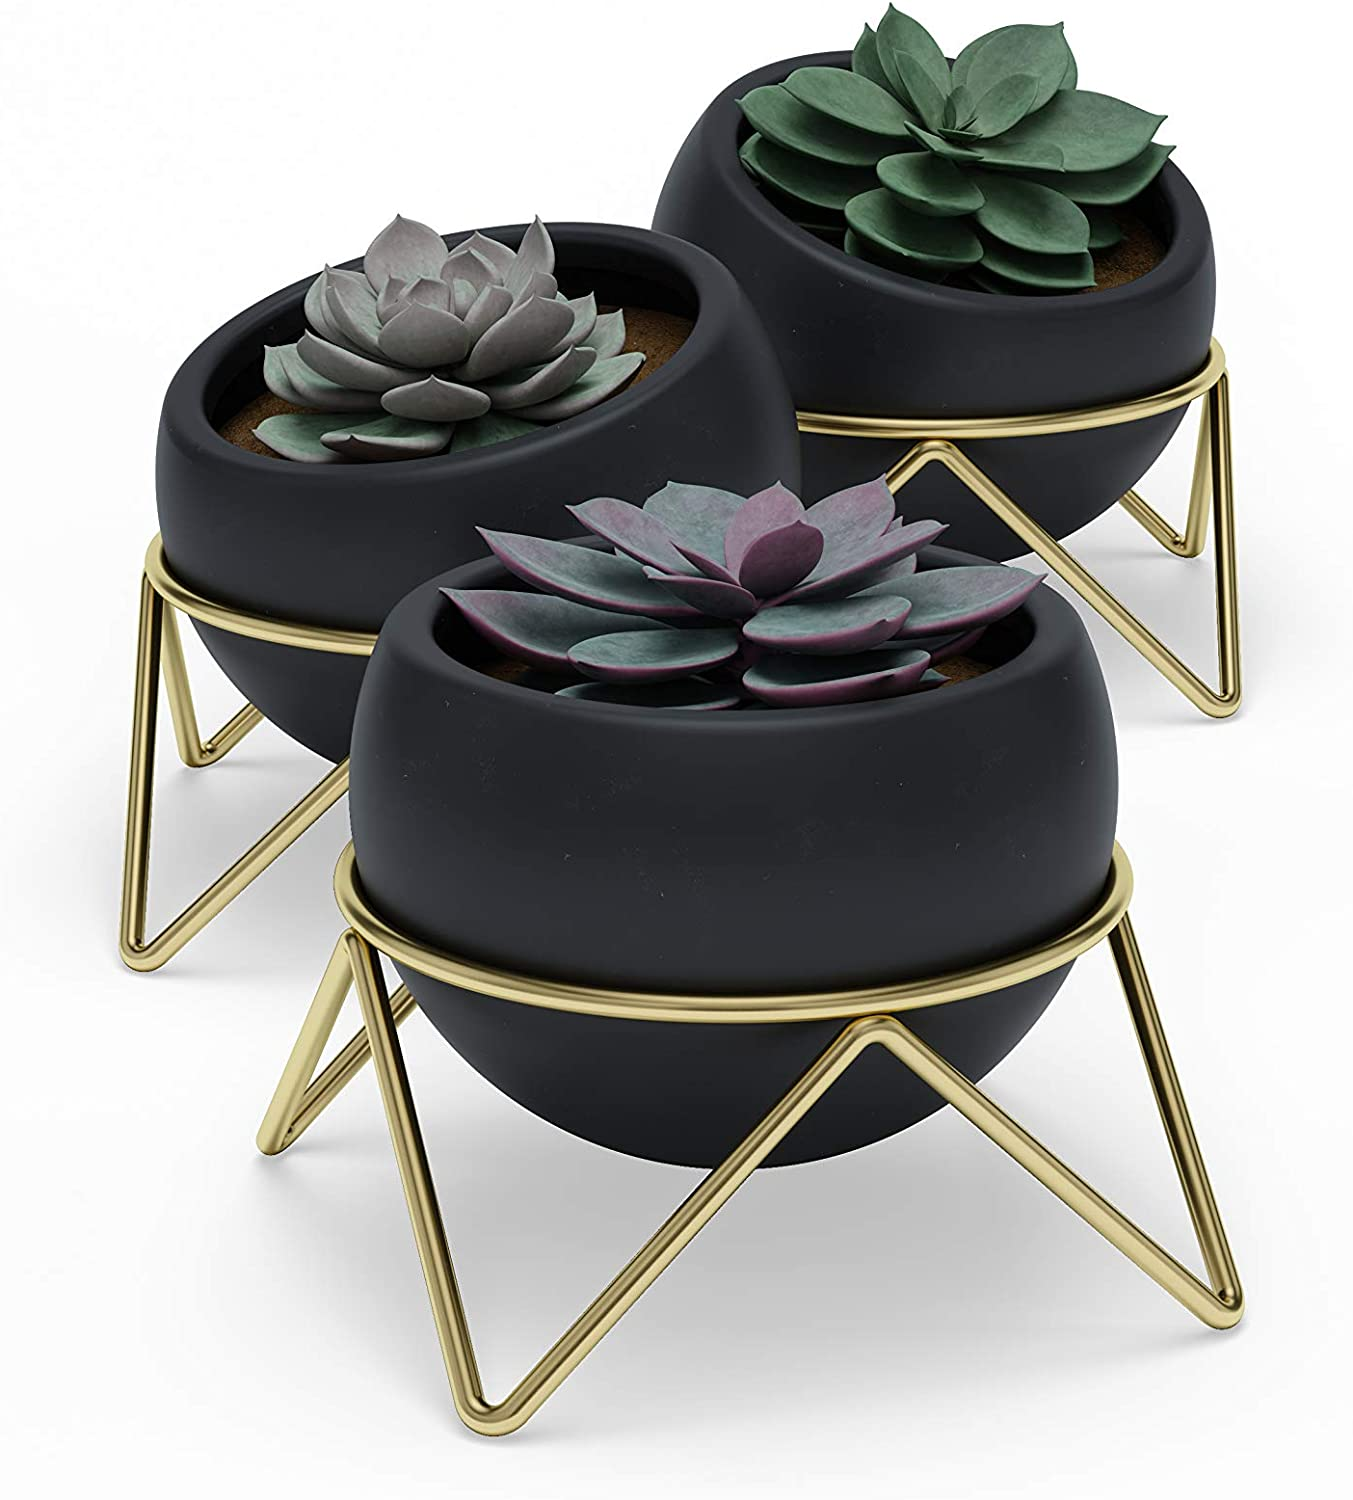 Umbra Potsy, Set of 3 Desktop Planters for Succulents, Mini Cacti, Faux Plants and More, Black/Brass